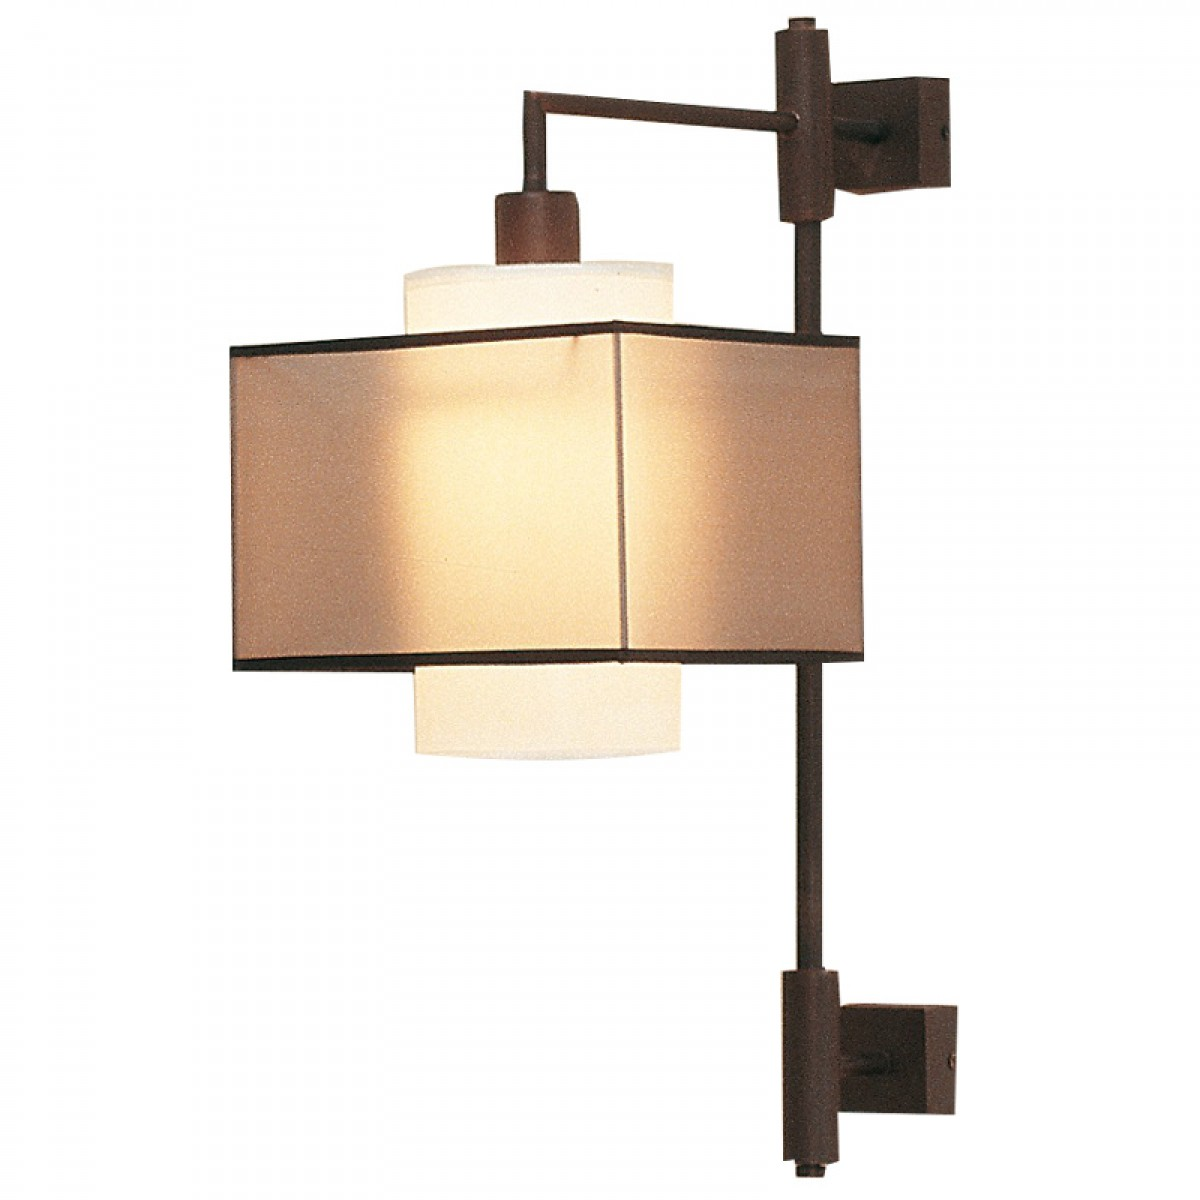 chary wandlampe aus messing mit bronze finish hotel4home. Black Bedroom Furniture Sets. Home Design Ideas